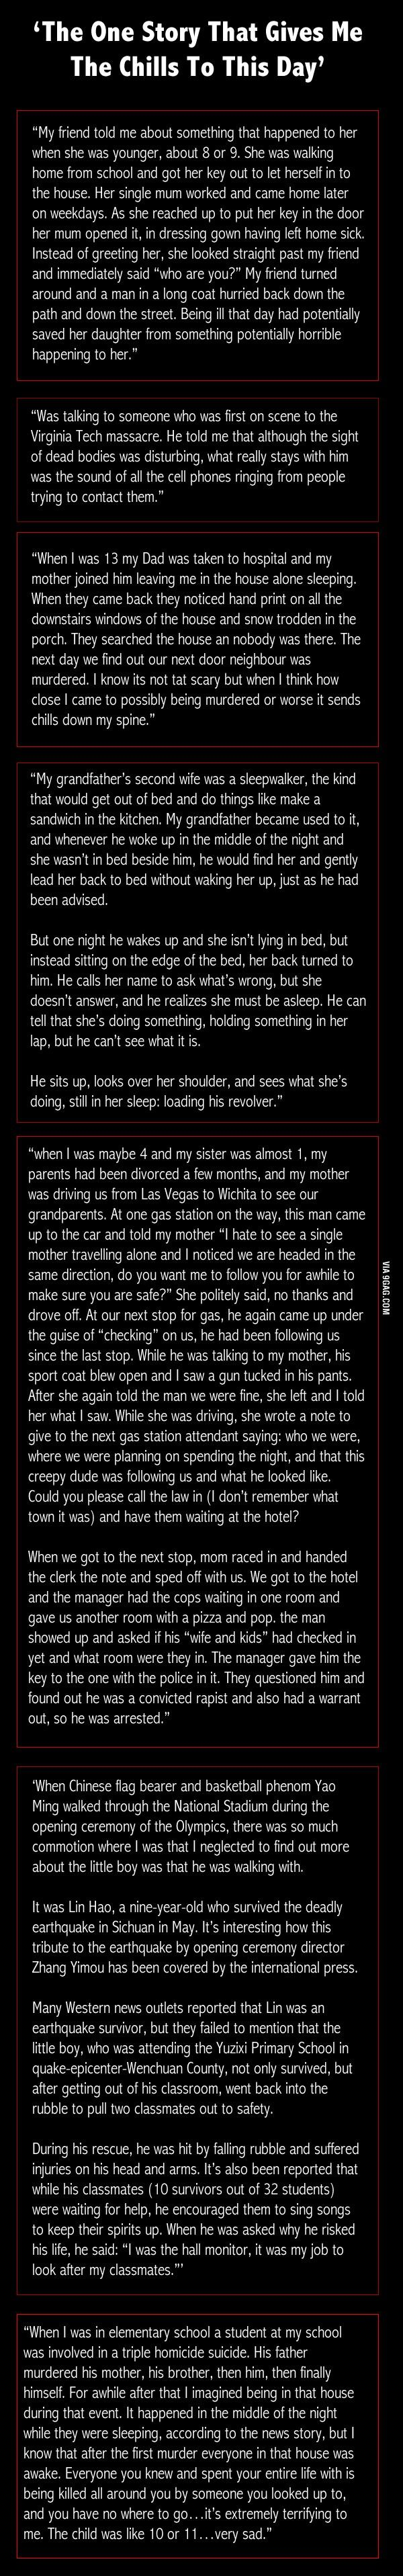 'The One Story That Gives Me The Chills To This Day'